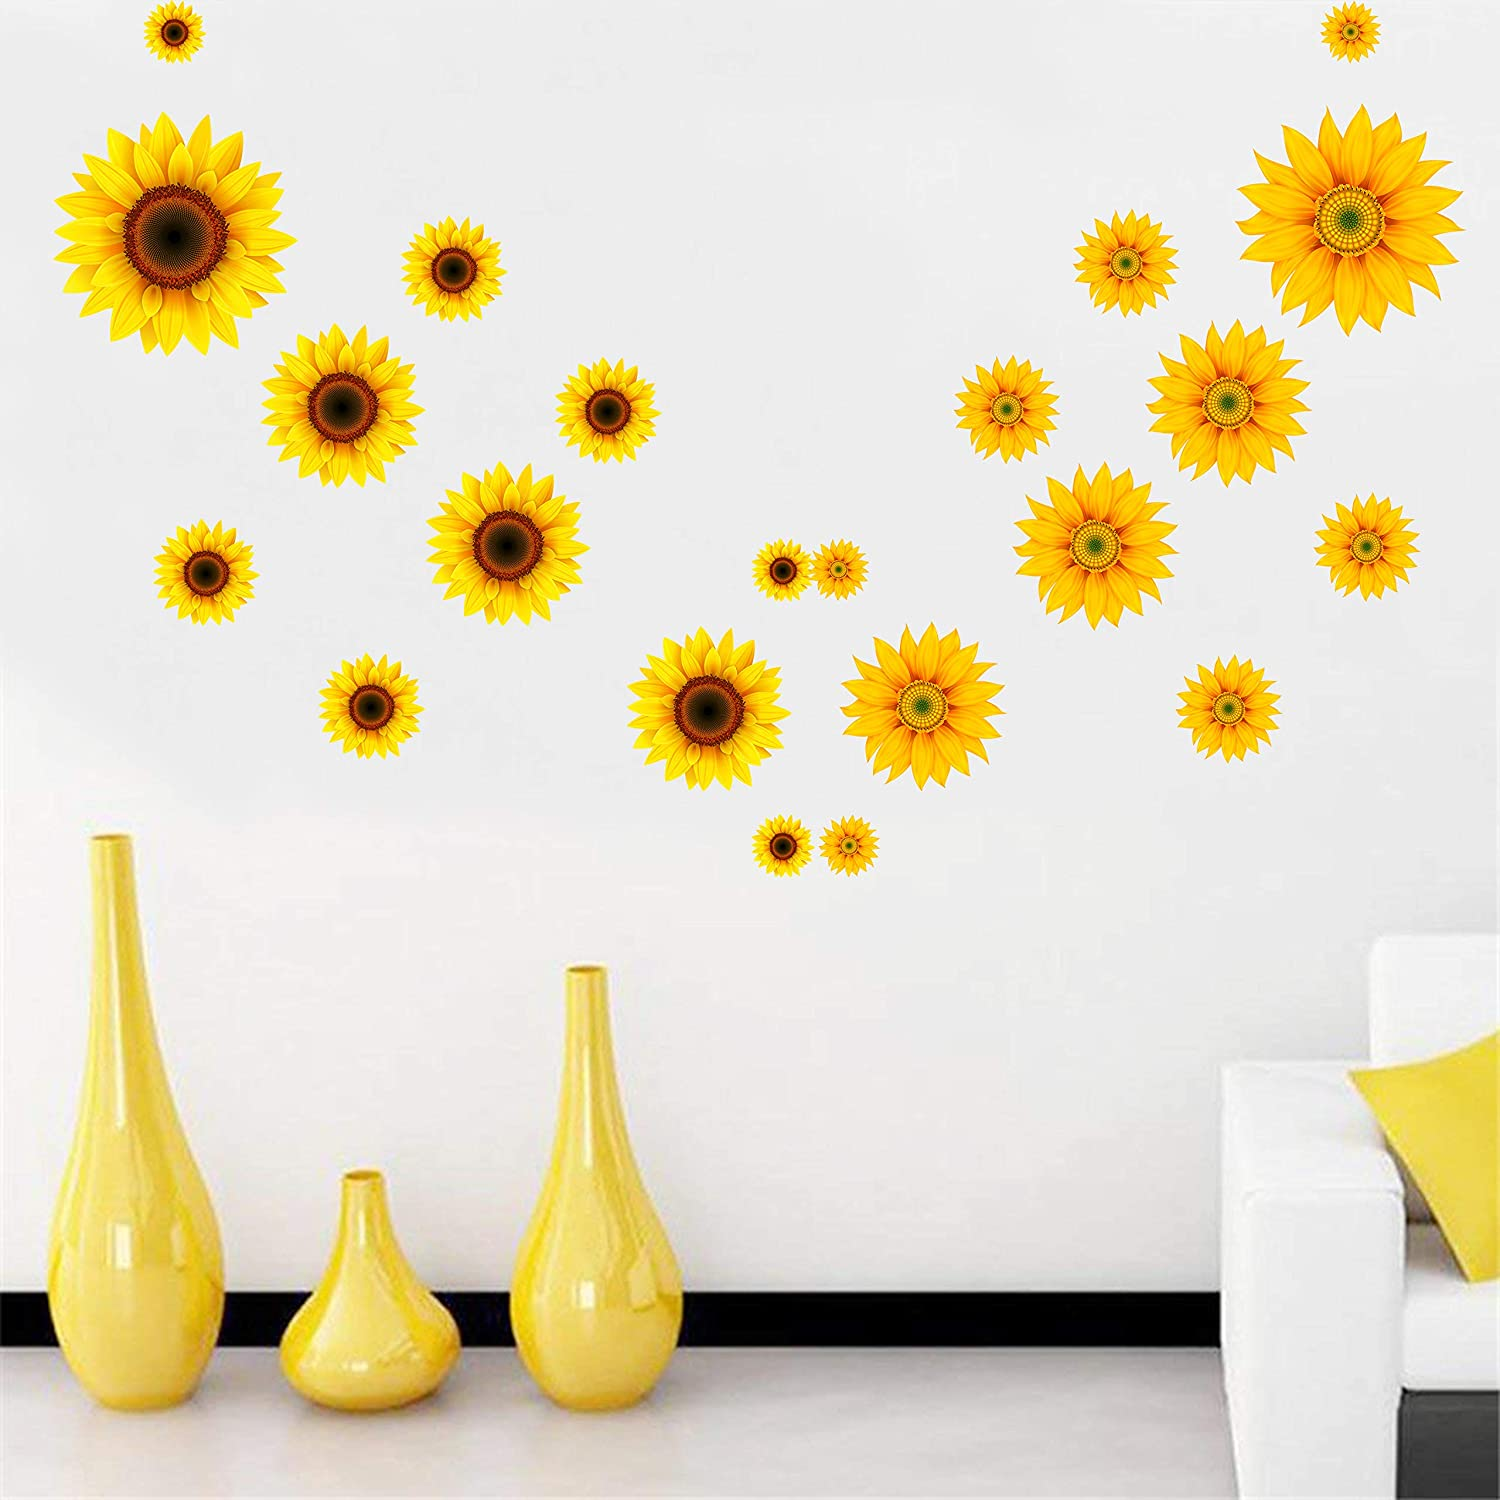 22pcs diy sunflower wall sticker 3d yellow flower wall decals peel and stick removable wall art decor nursery daisy floral stickers for kids baby